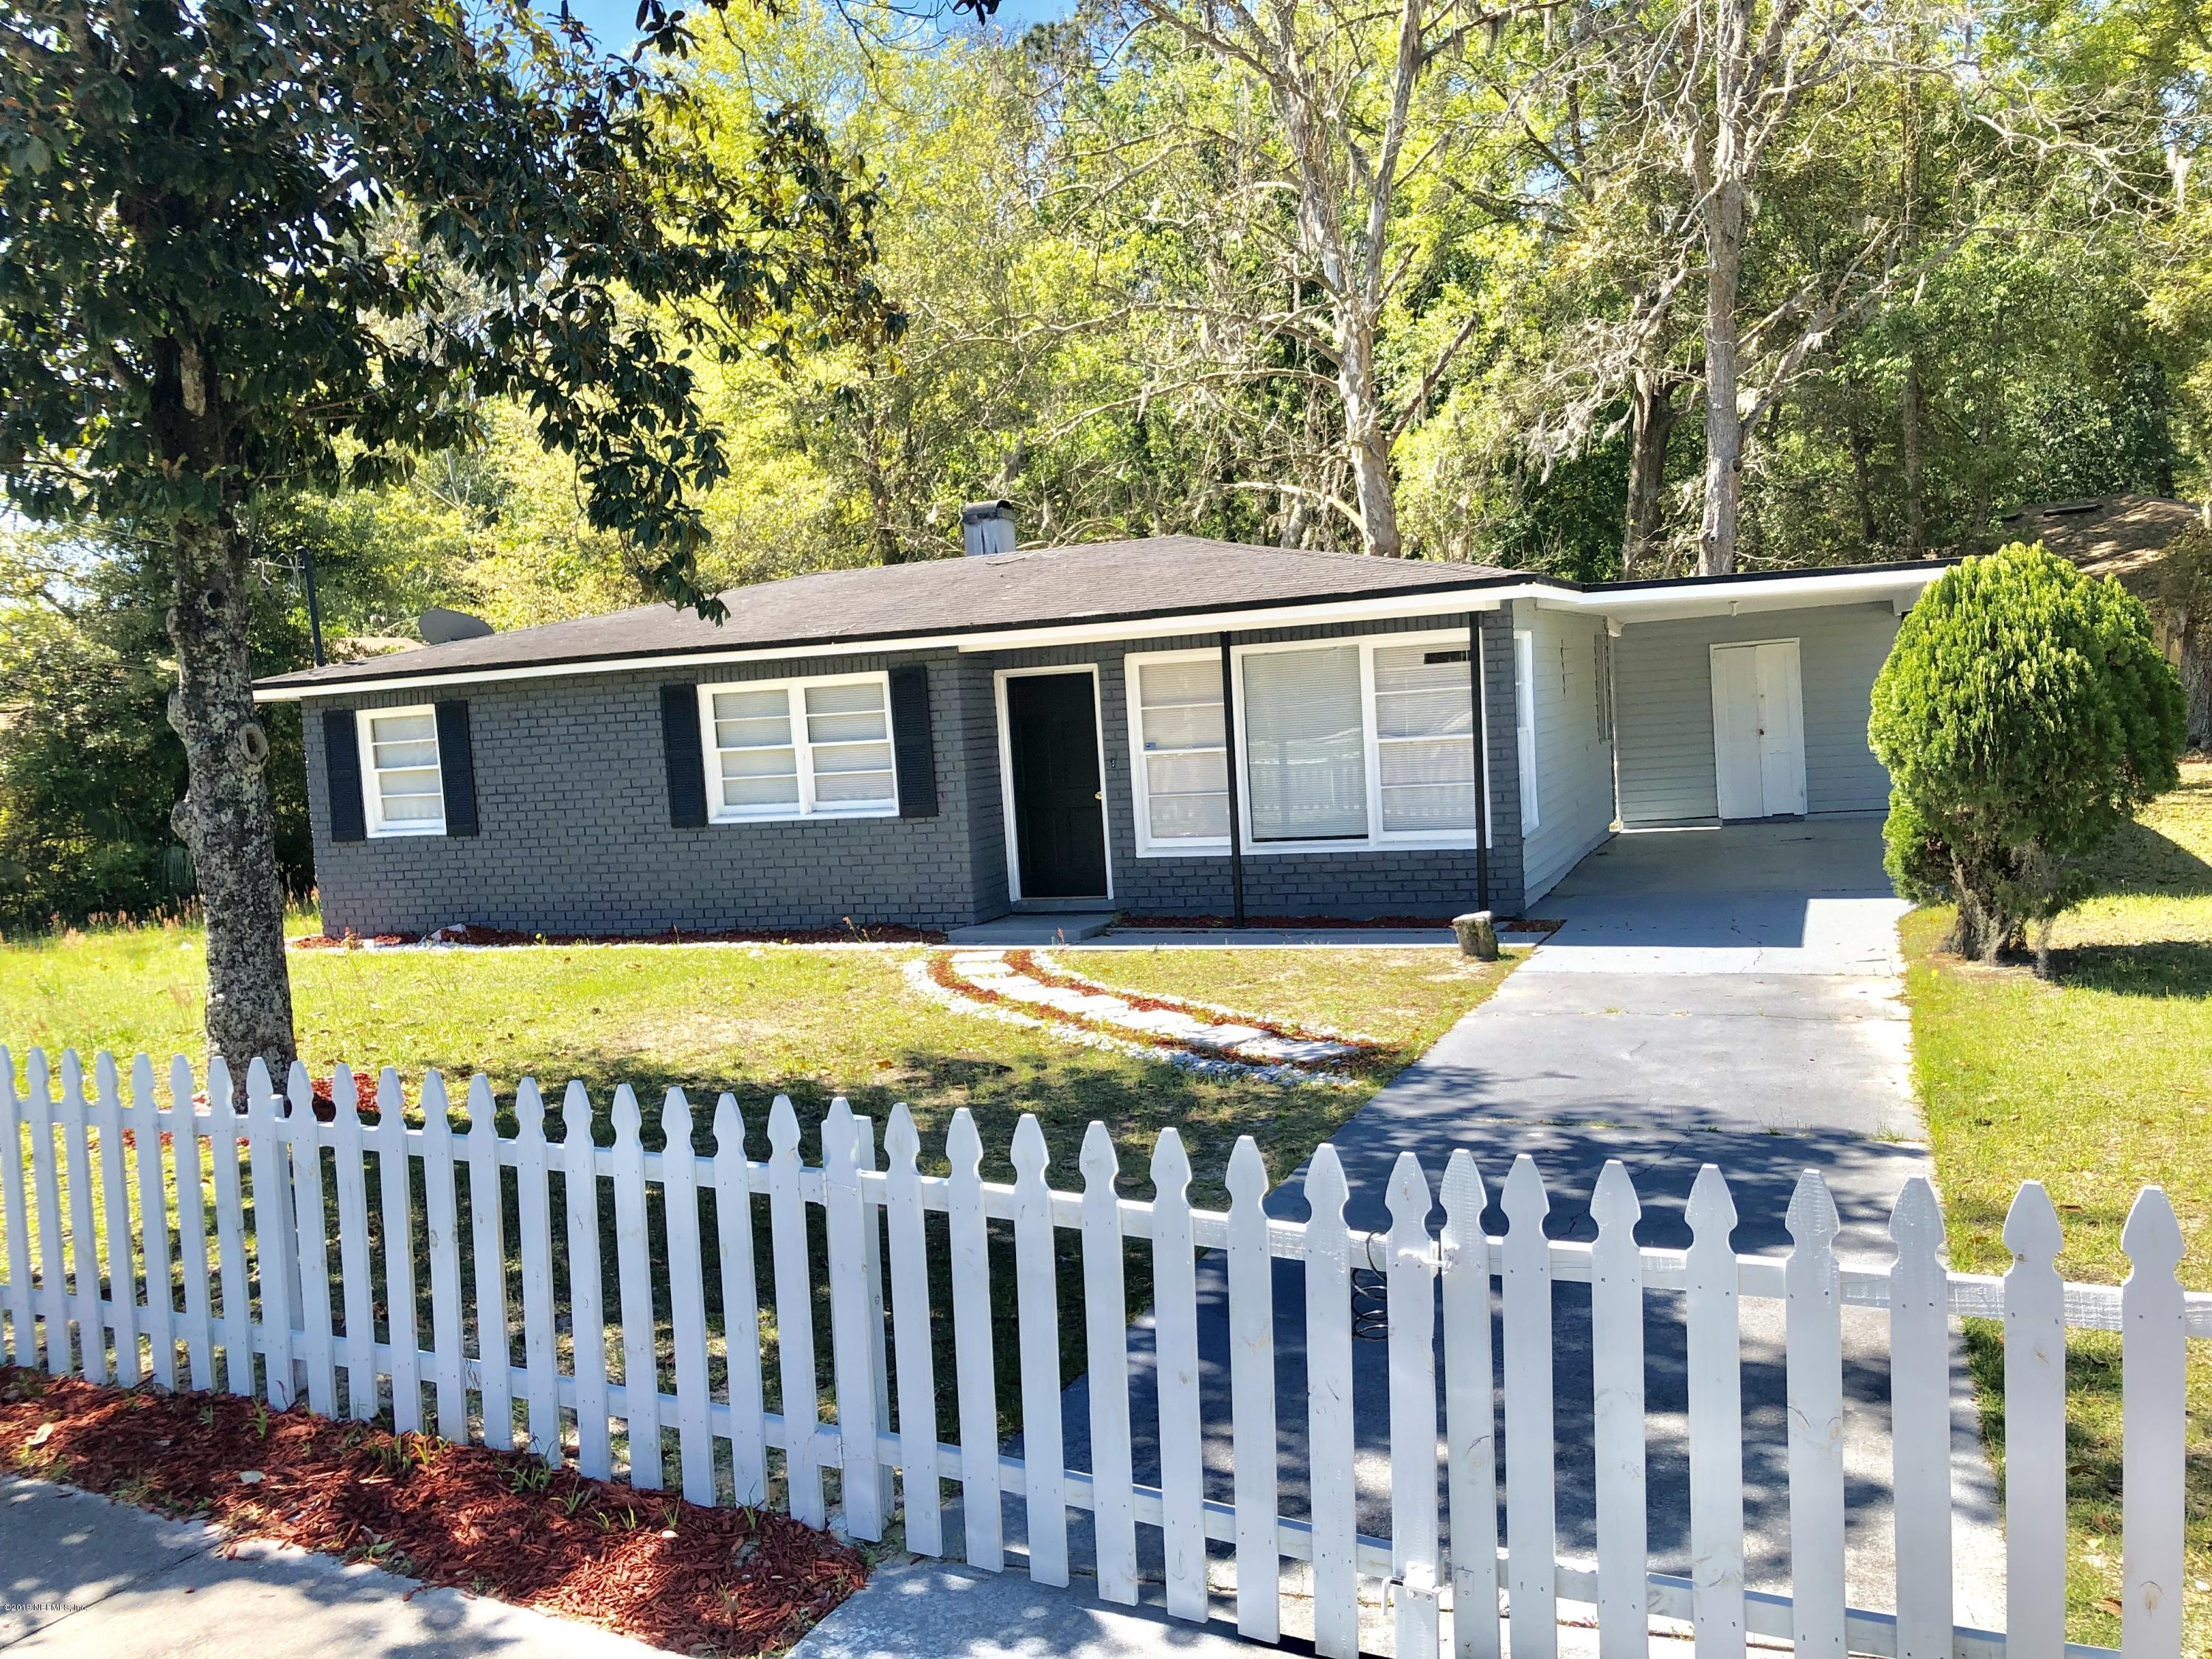 9128 NORFOLK, JACKSONVILLE, FLORIDA 32208, 3 Bedrooms Bedrooms, ,1 BathroomBathrooms,Residential - single family,For sale,NORFOLK,986086